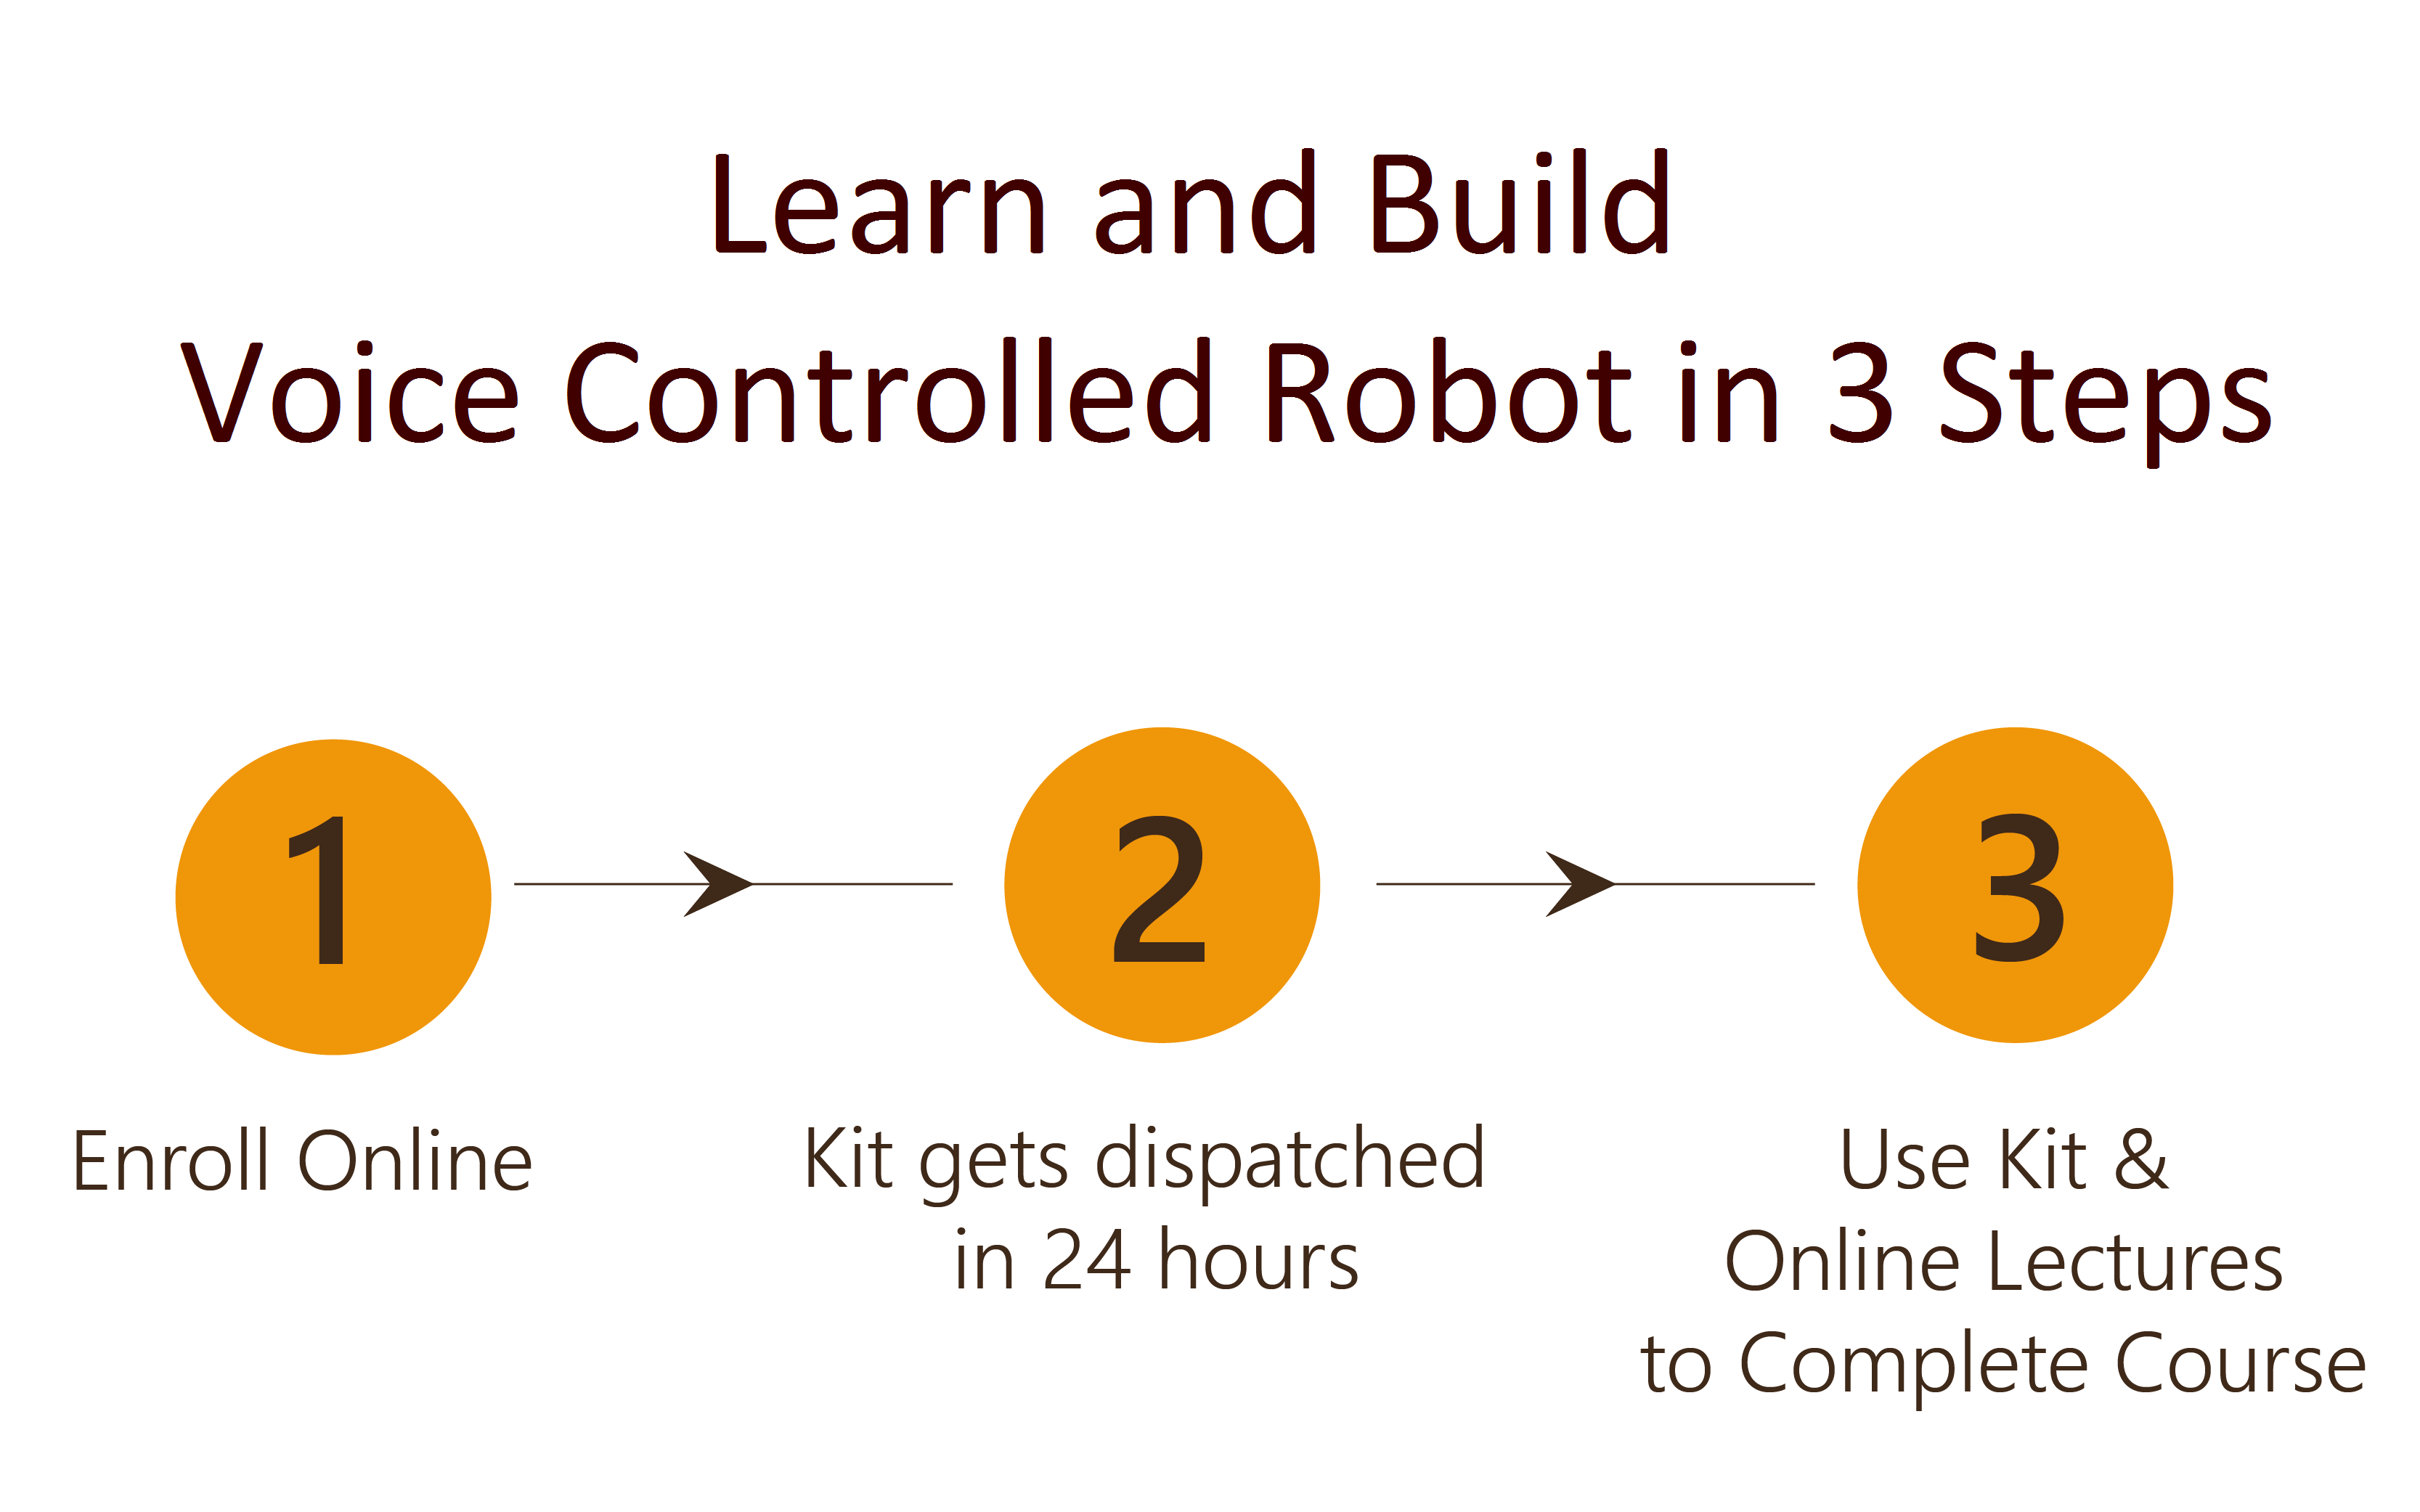 Design and Build Voice Controlled Robot in 3 Steps